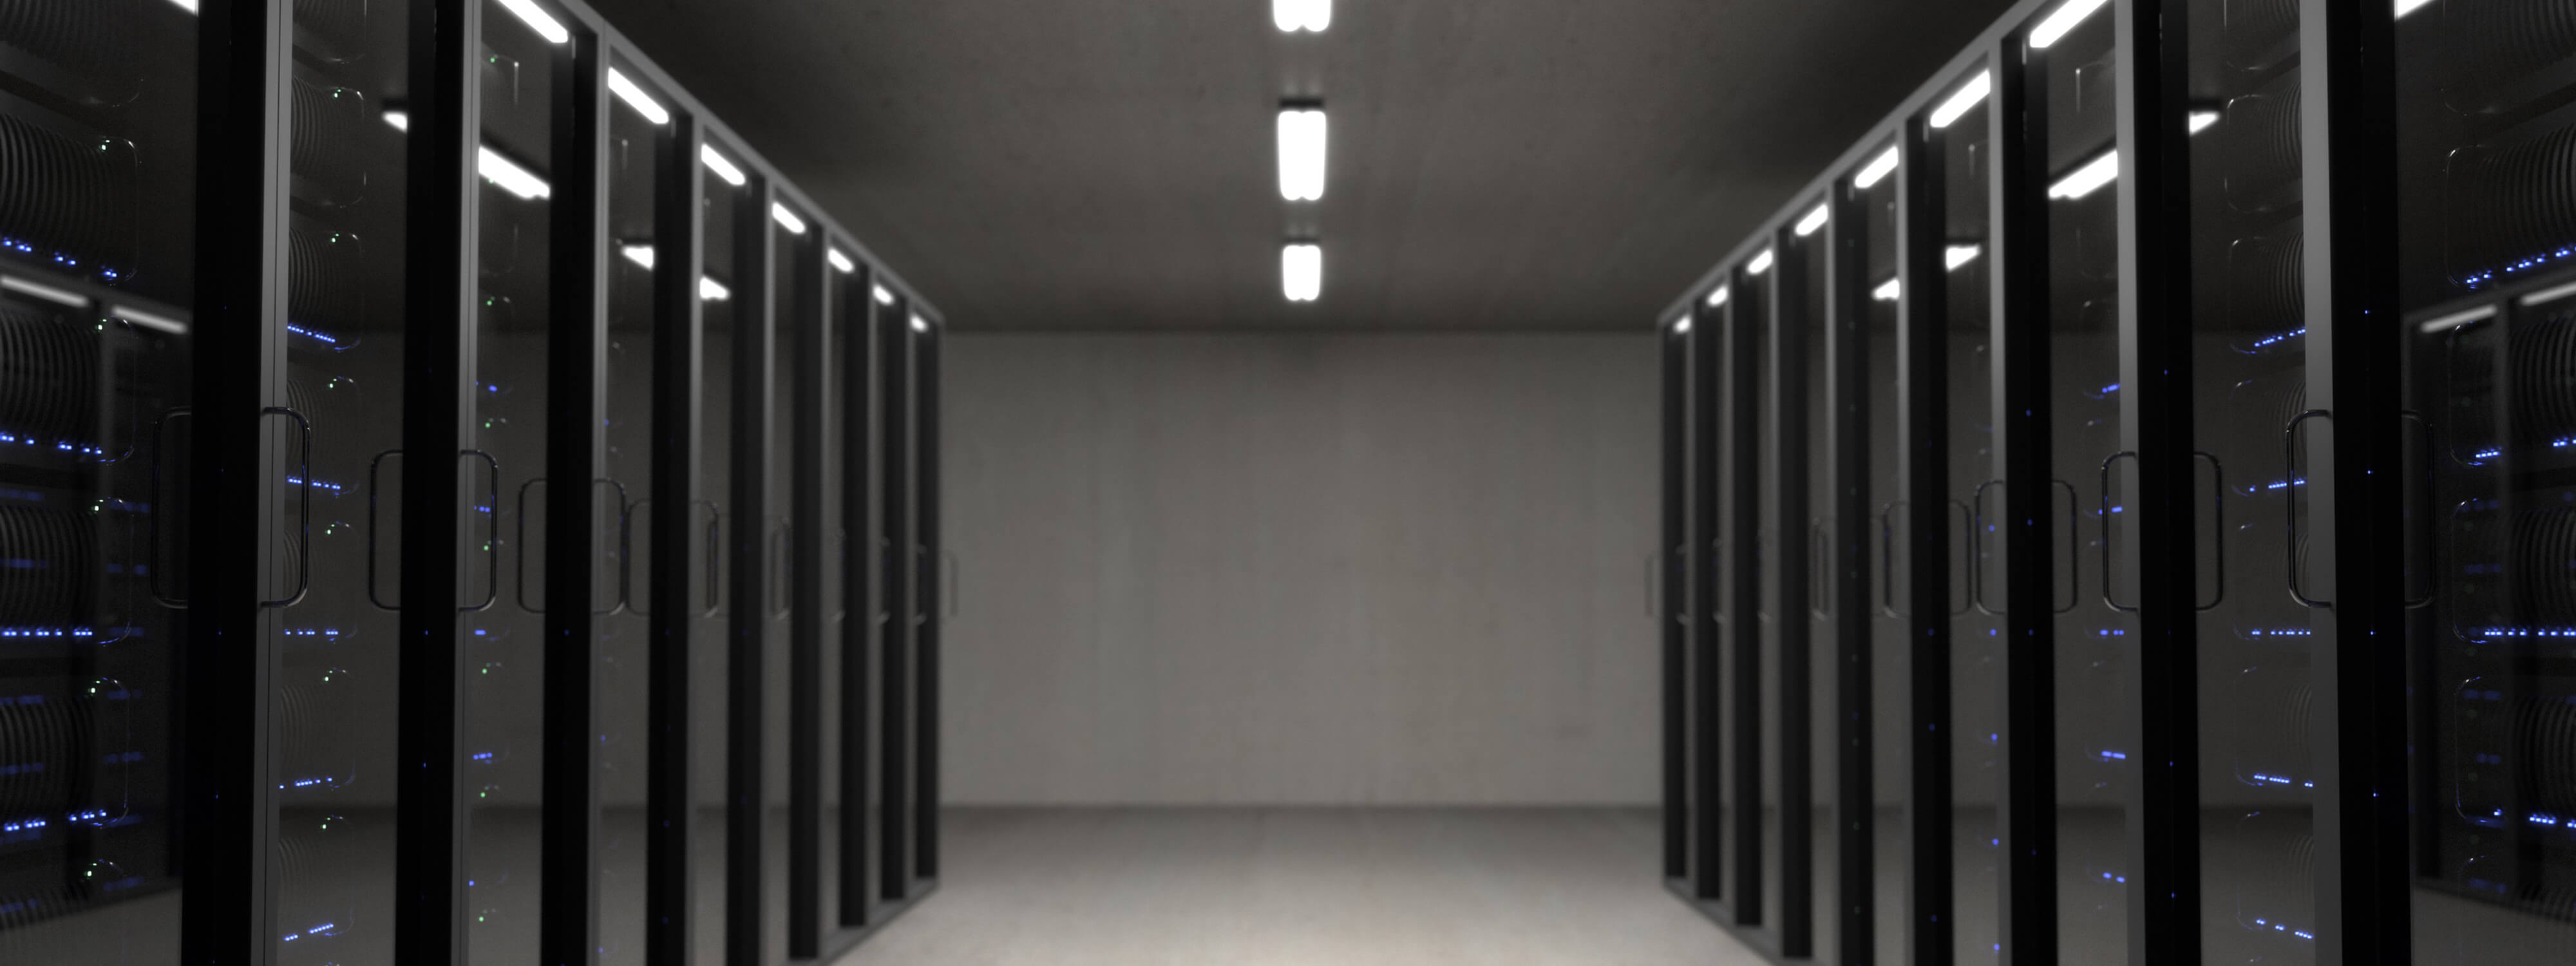 The Challenges of Minimizing Data Security Risks